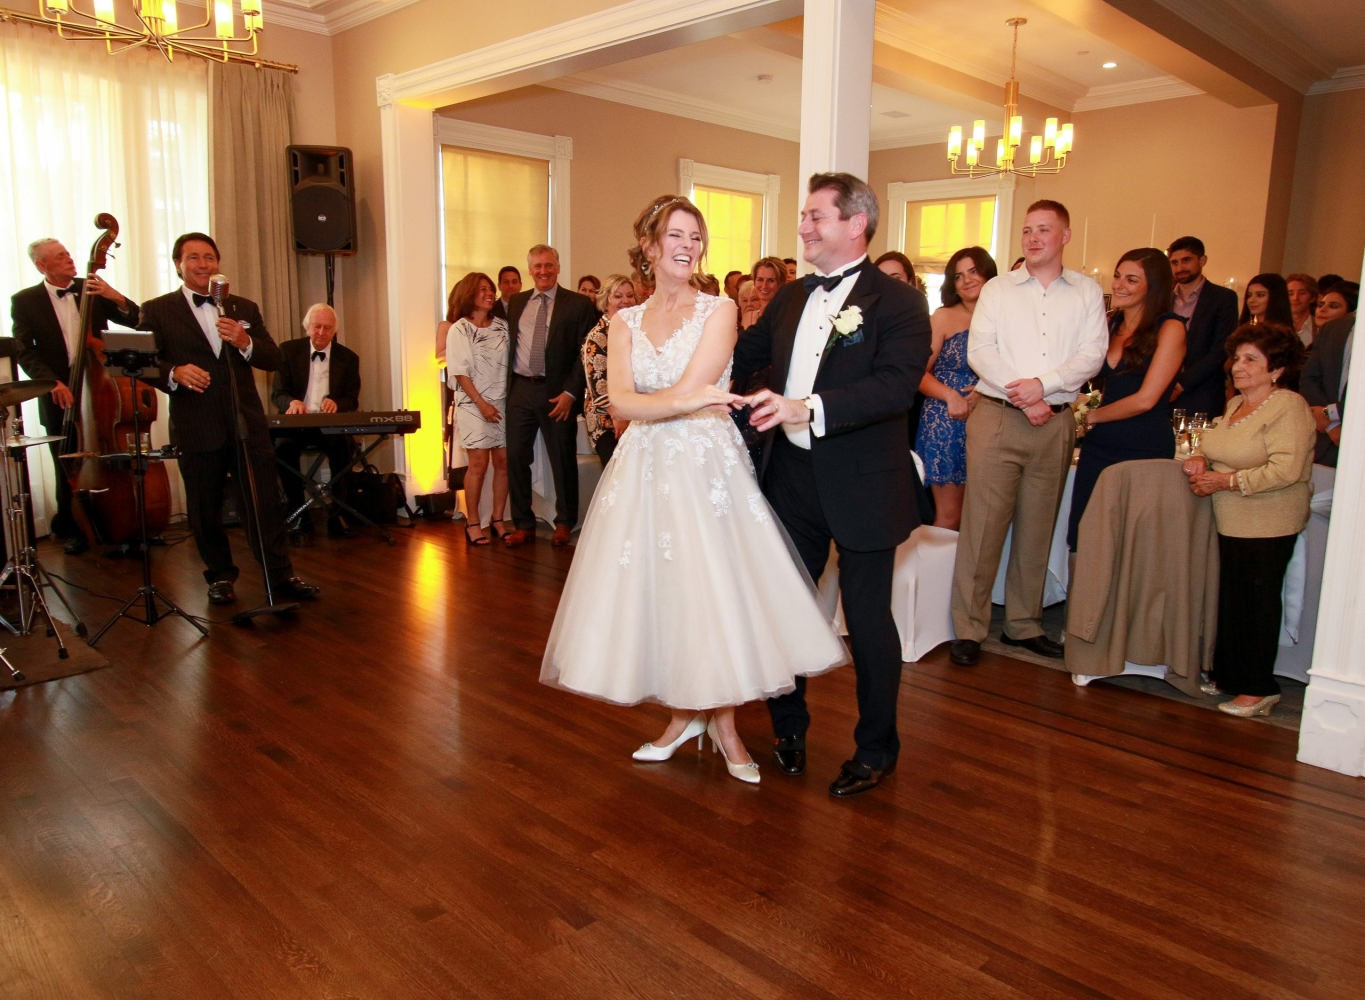 First Dance Douglaston Club Douglaston NY 2